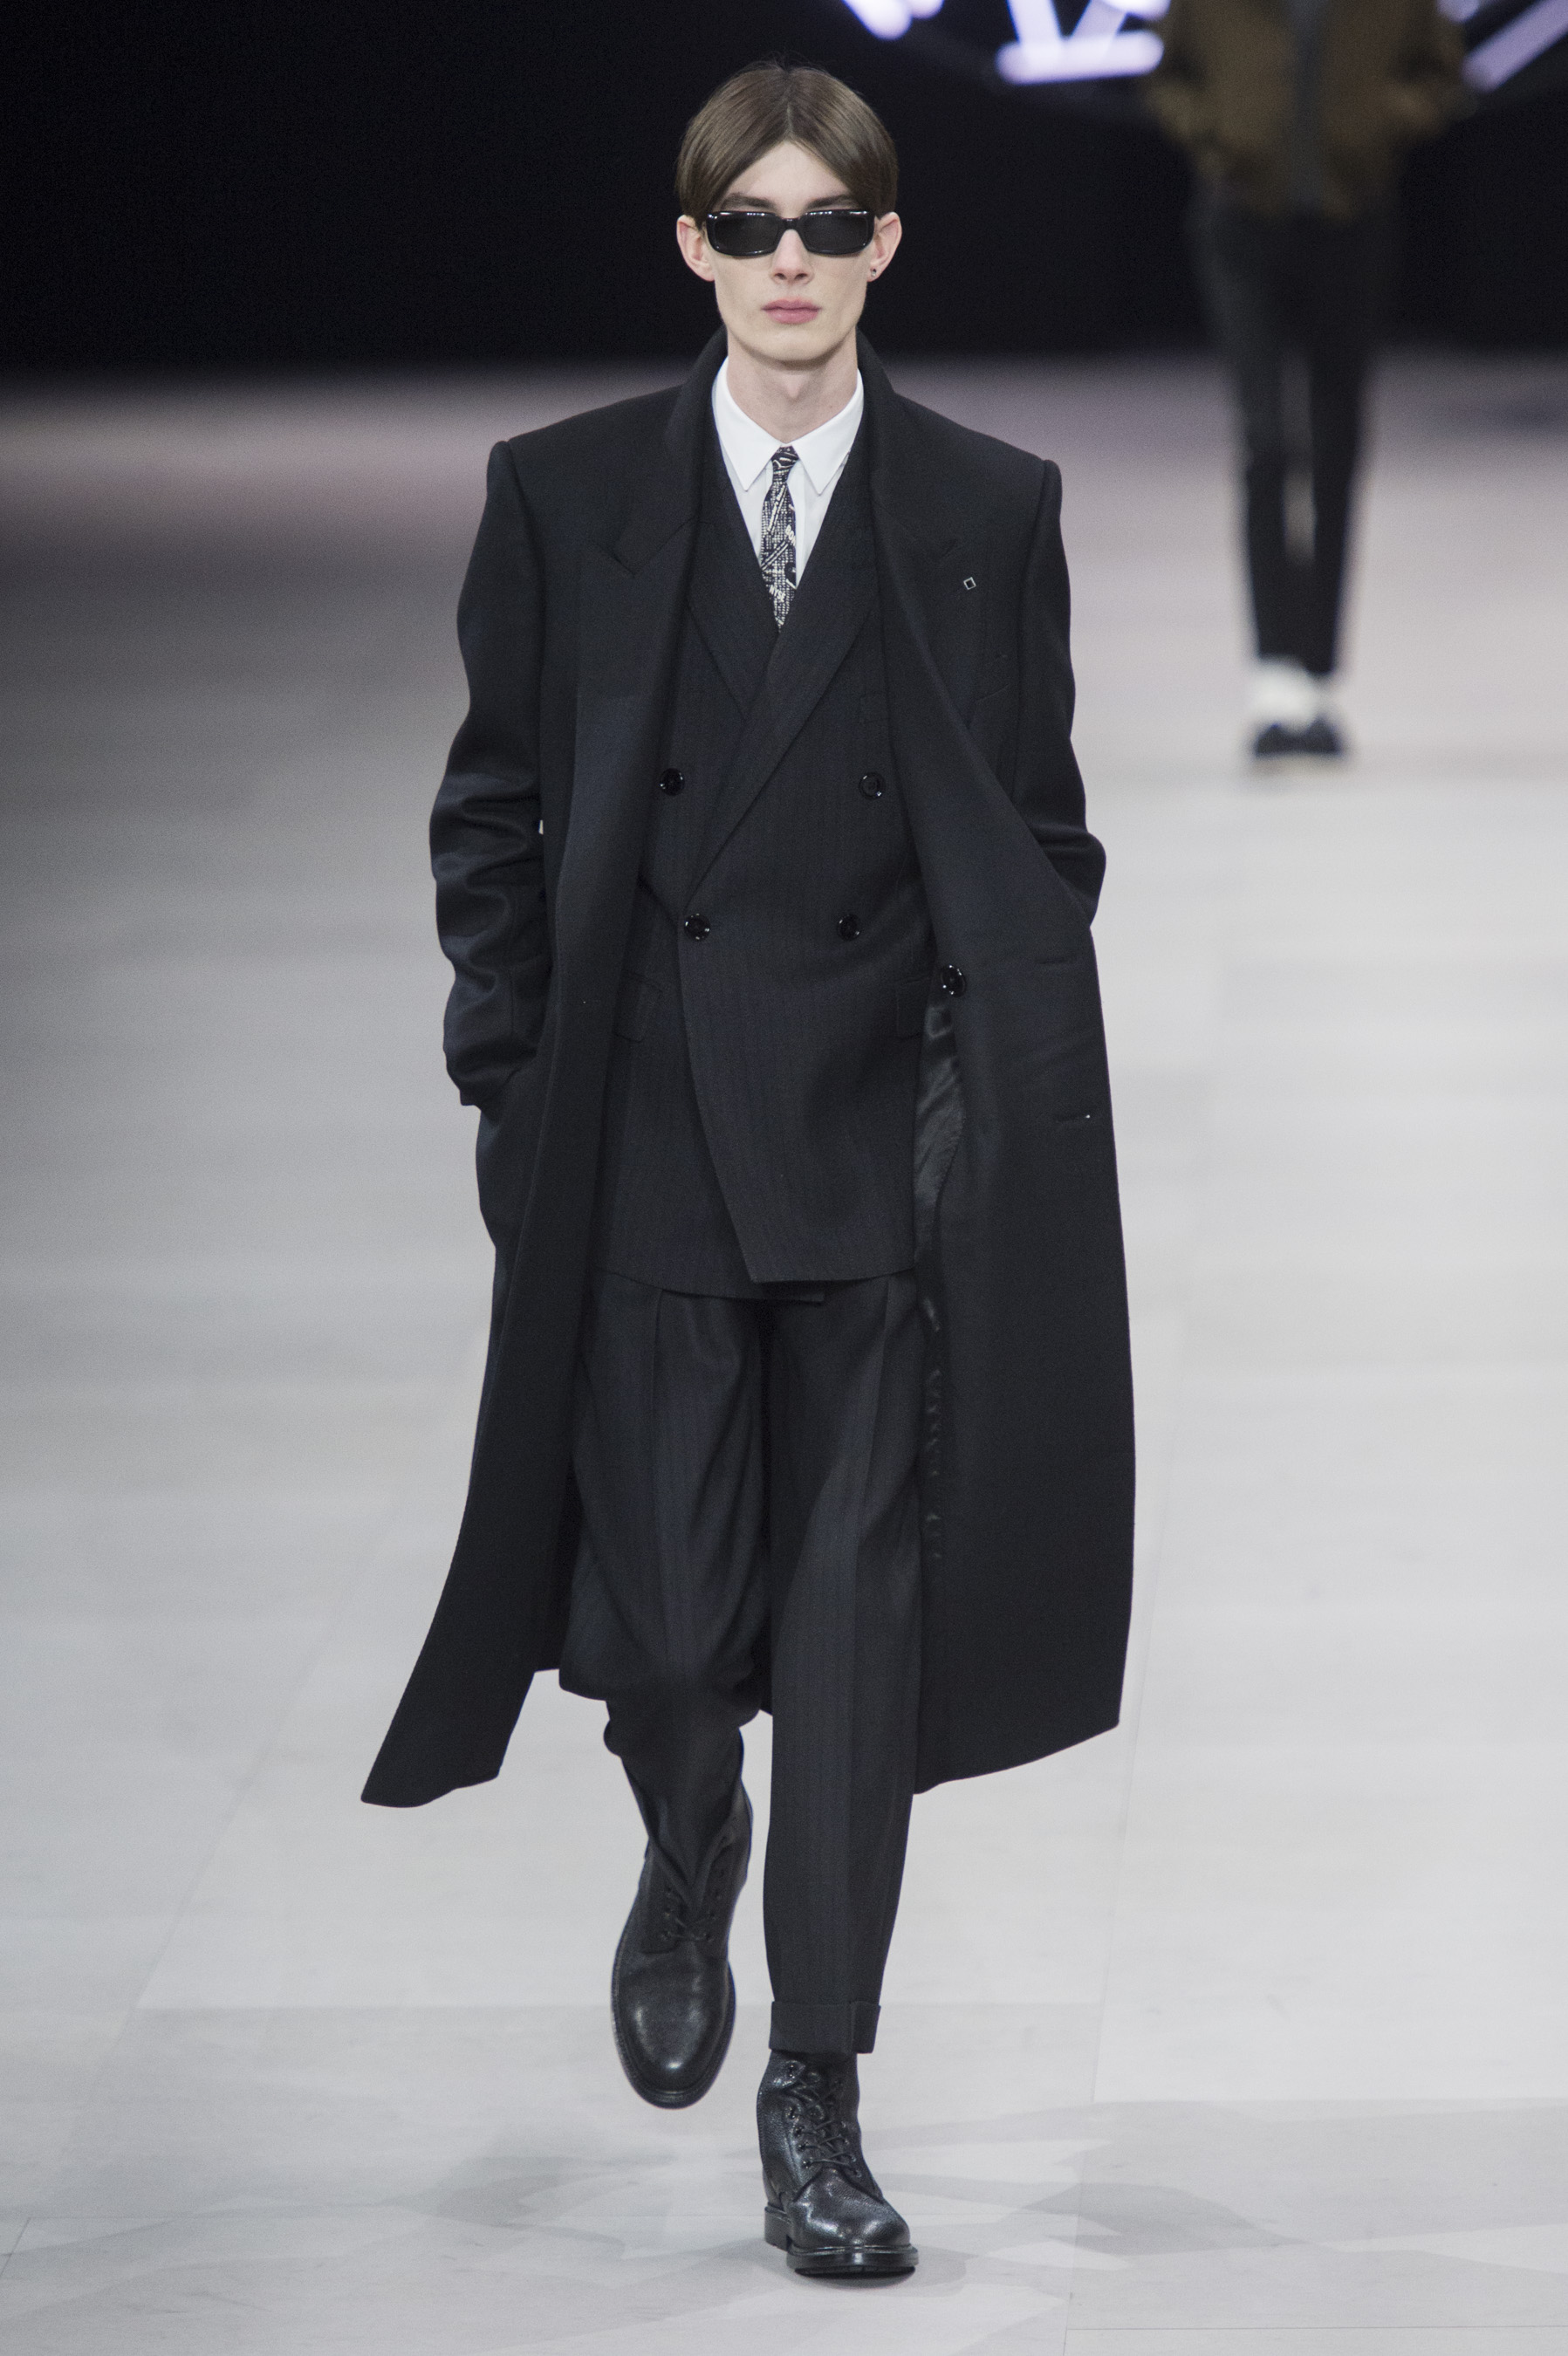 Celine Fall 2019 Men's Fashion Show